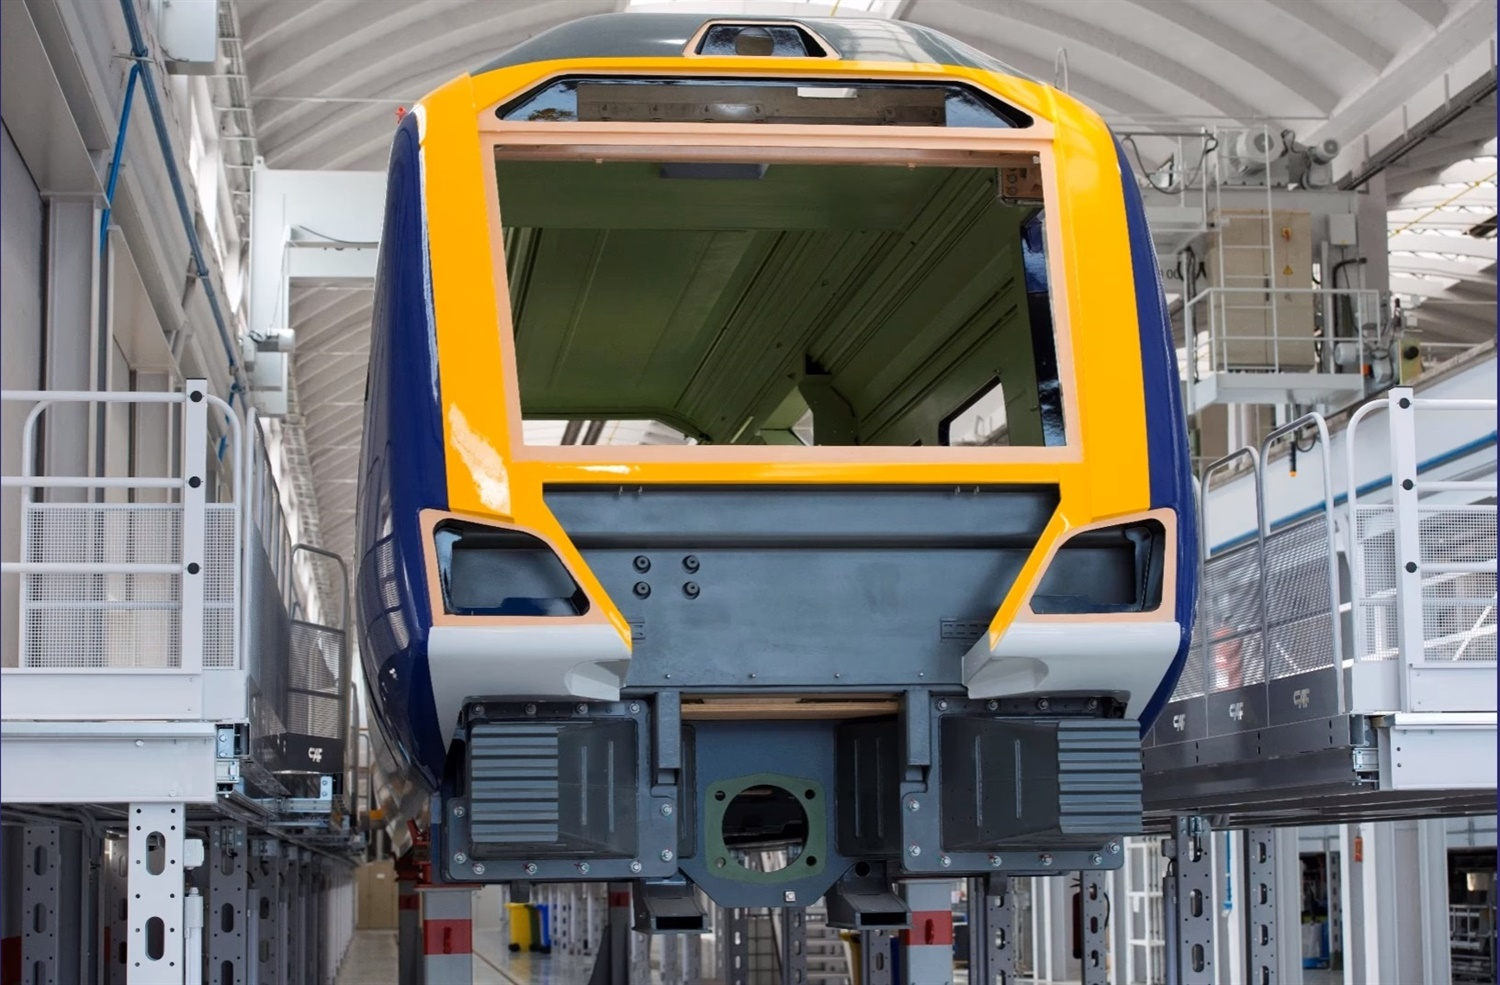 Bodyshells of new Northern rolling stock 'coming together'